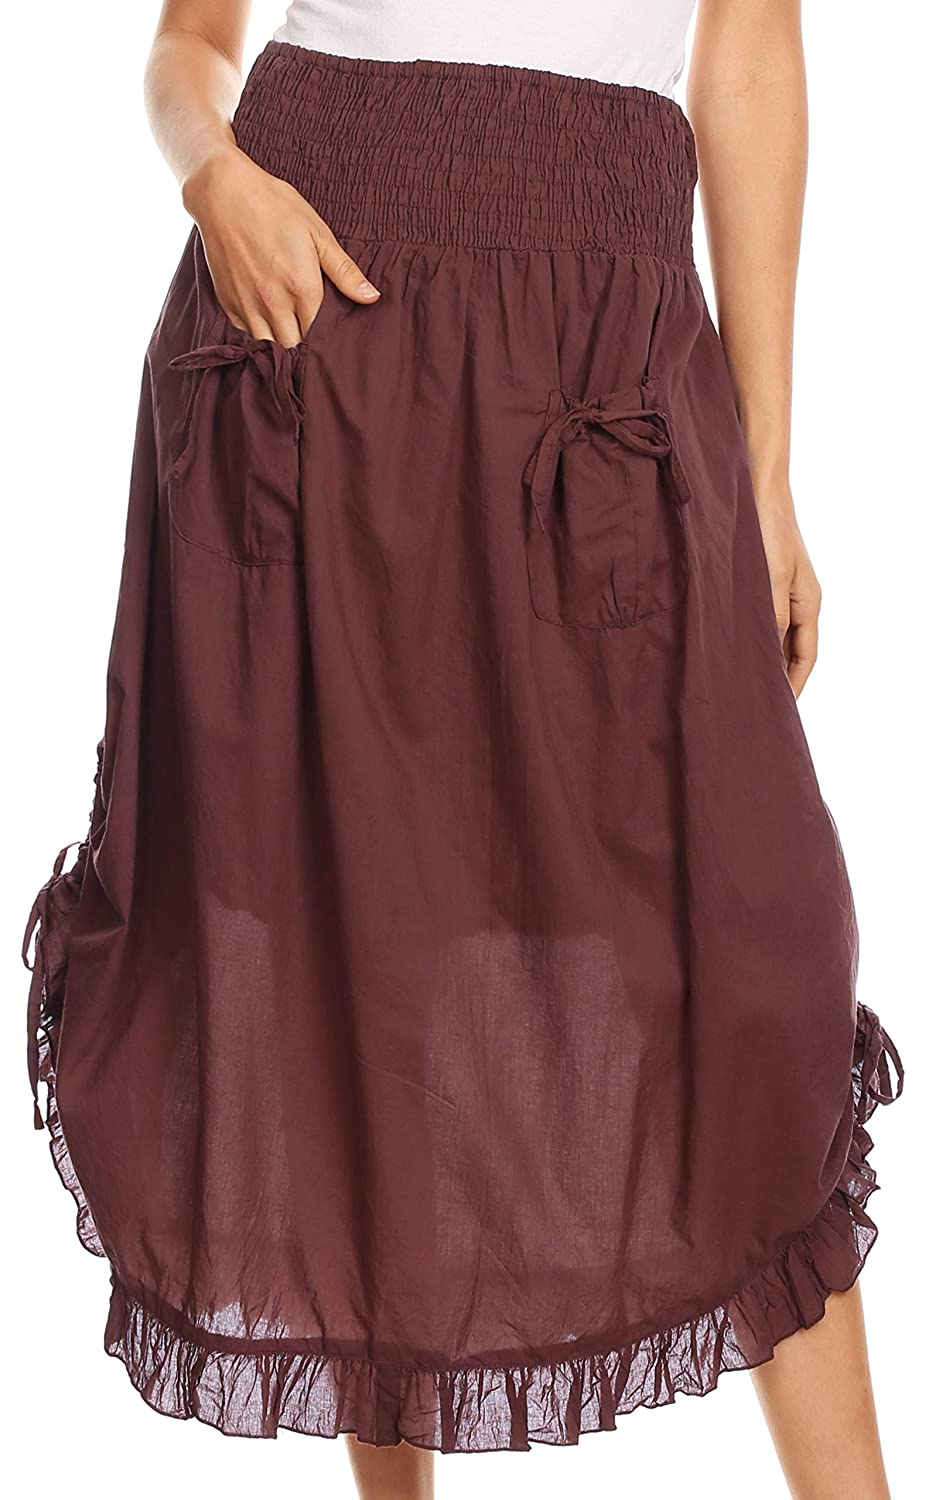 Sakkas Coco Long Cotton Ruffle Skirt with Pockets and Elastic Waistband 5056108316364